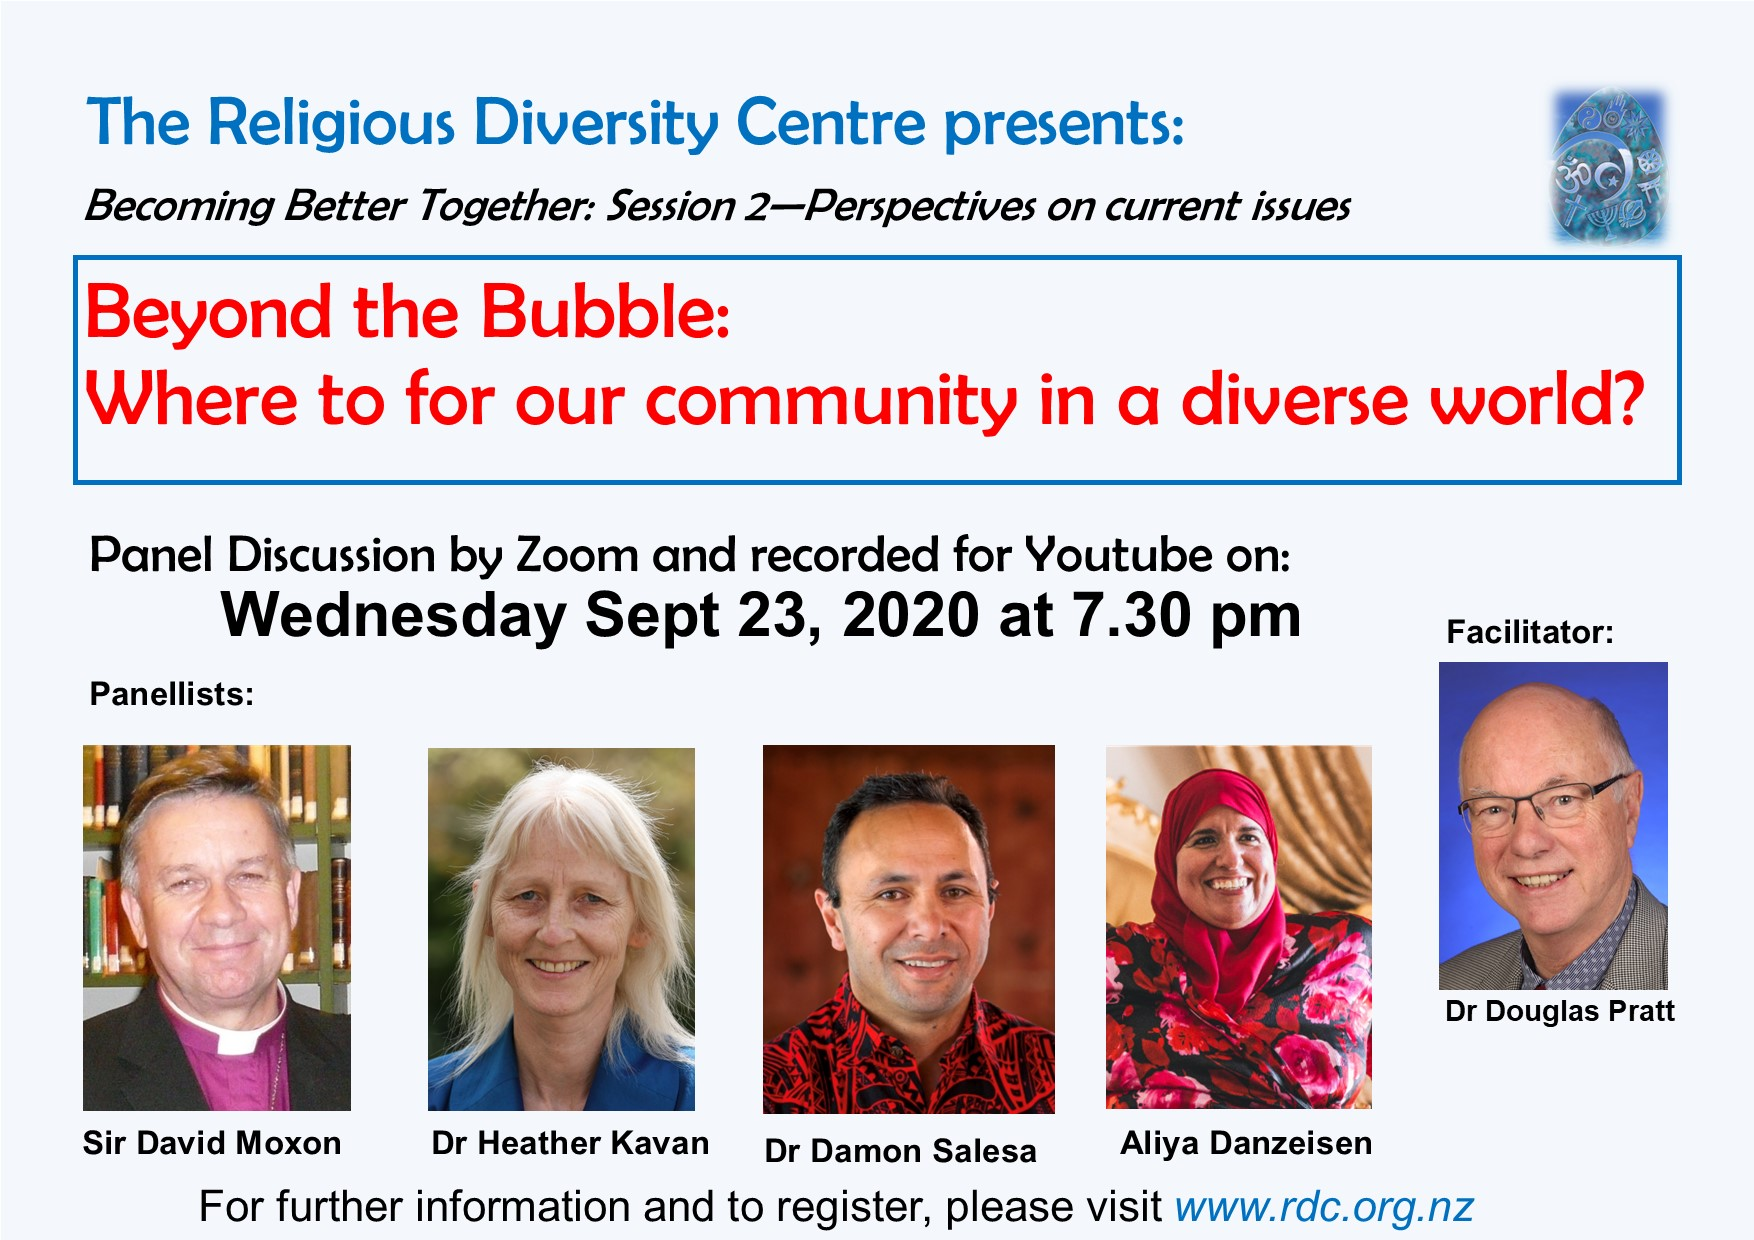 Webinar Series with the Religious Diversity Centre: Becoming Better Together – Perspectives on Current Issues